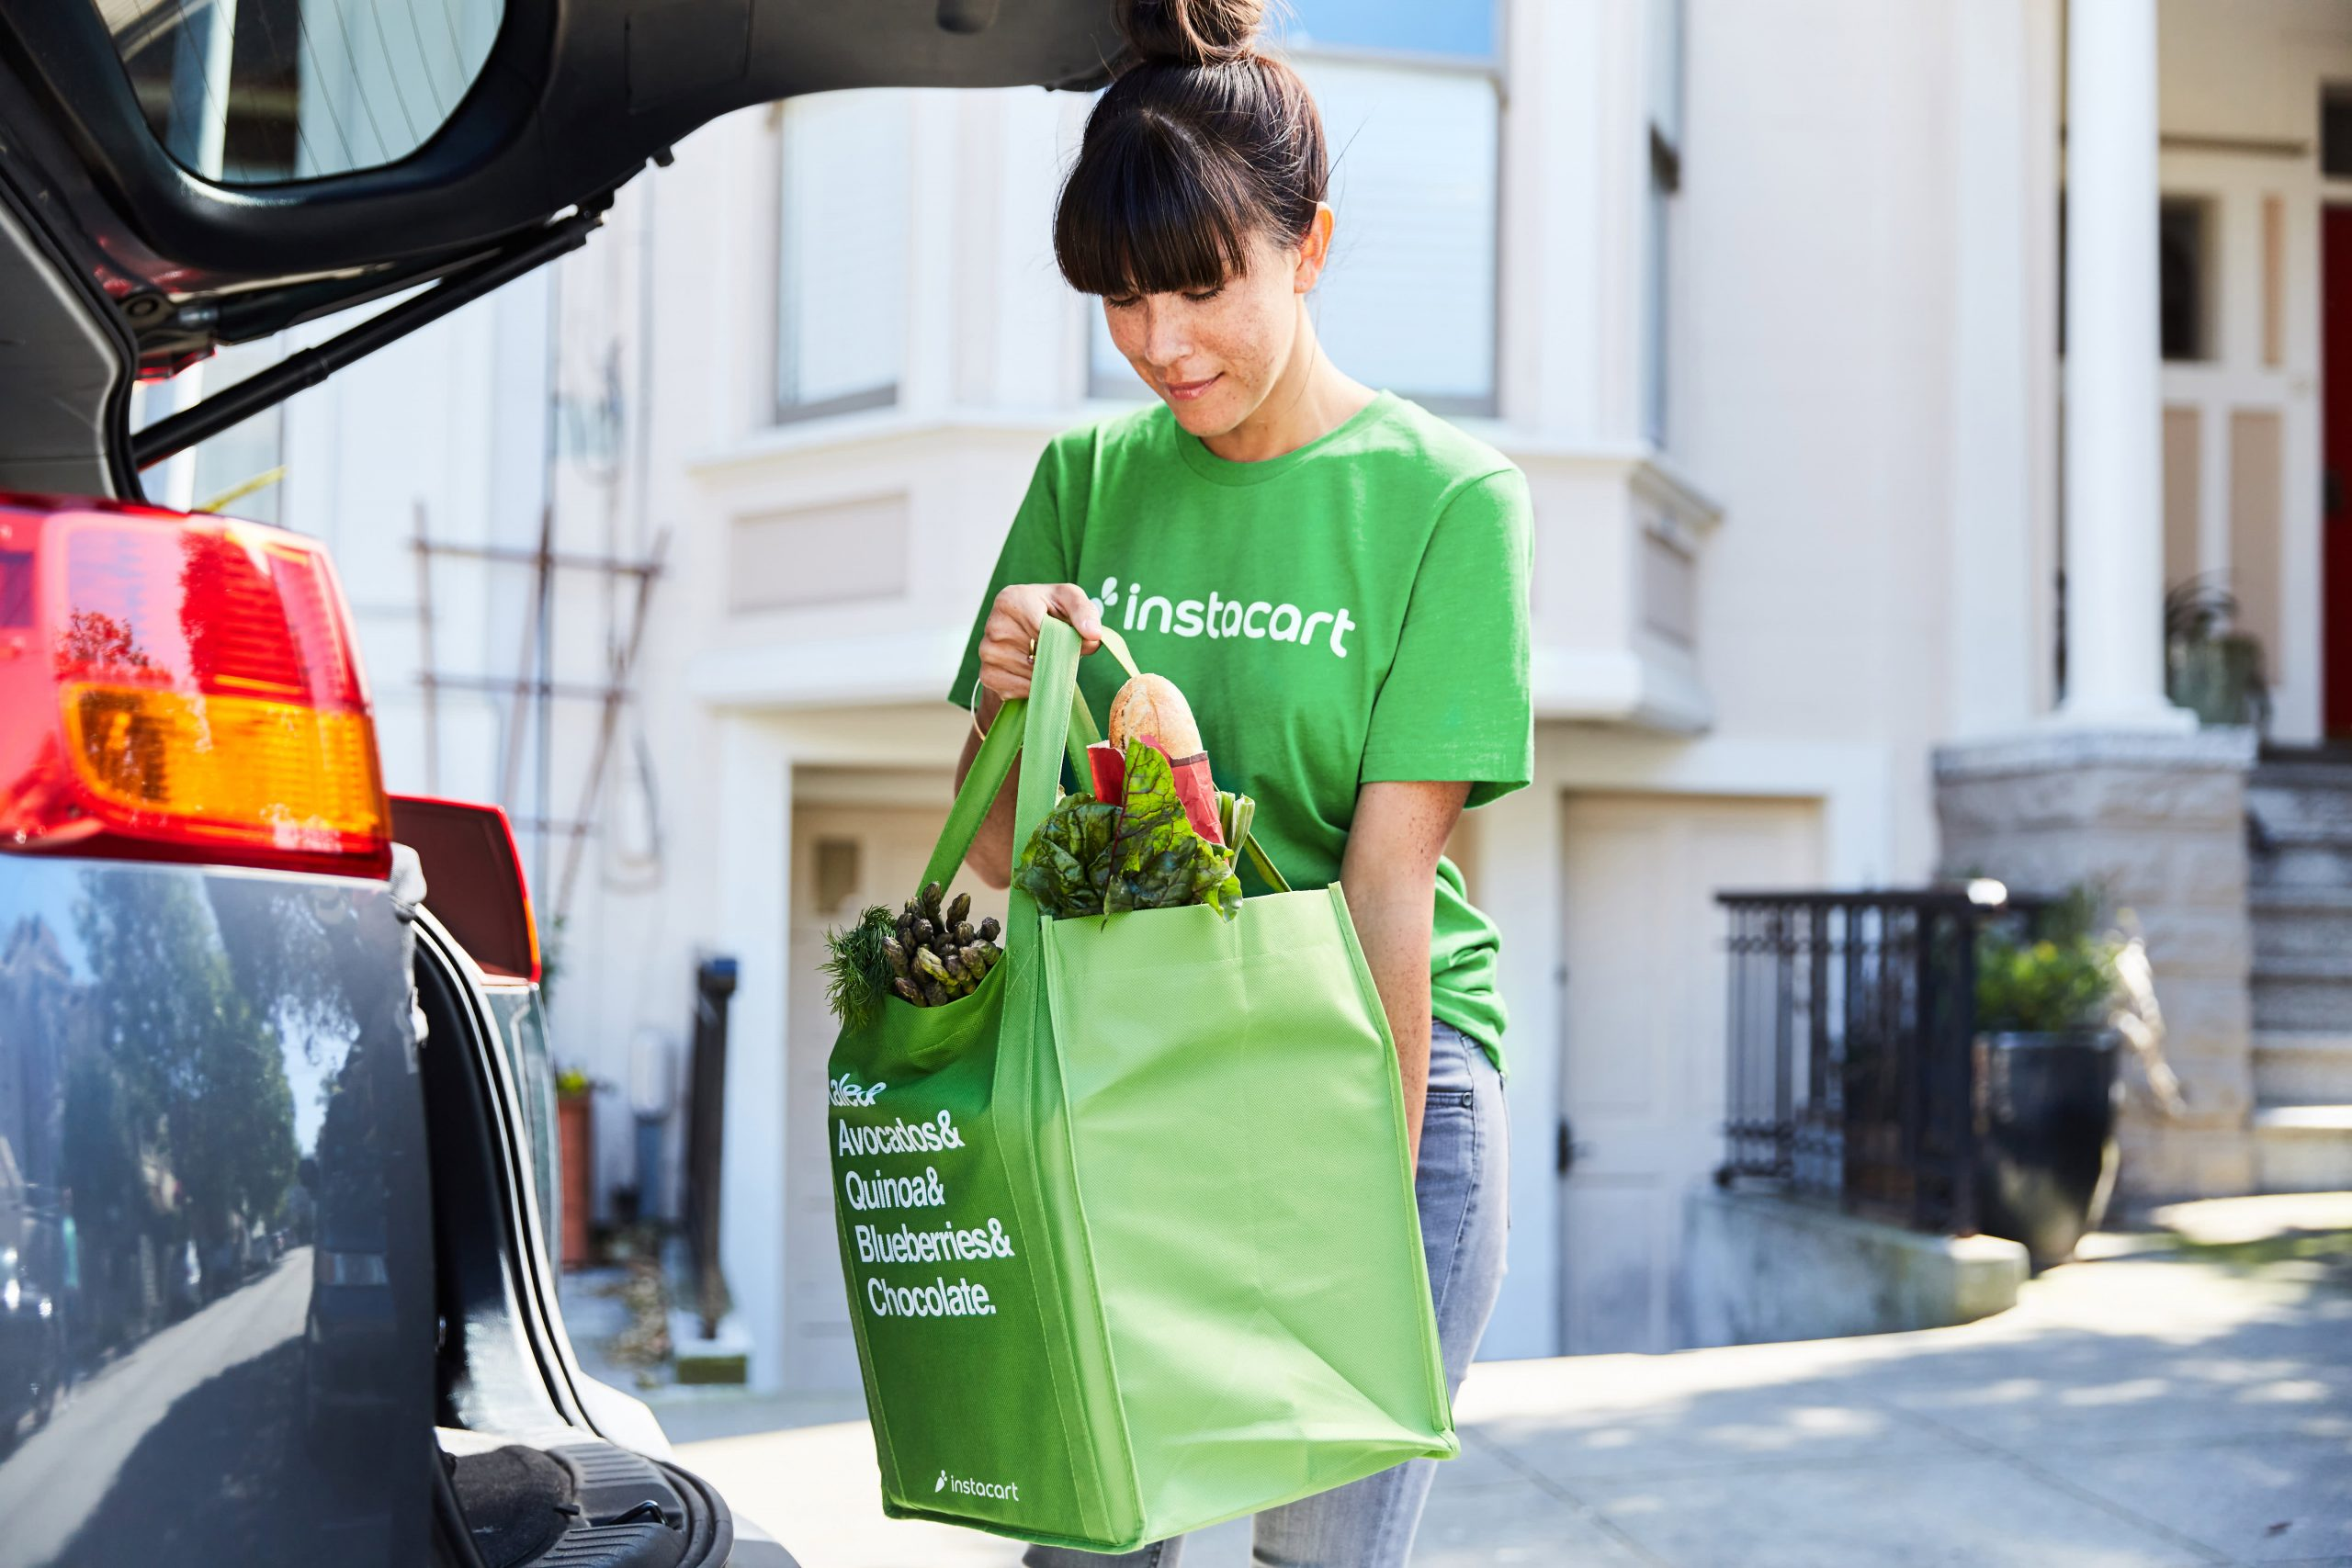 Instacart is choosing Goldman Sachs banker as CFO ahead of the expected IPO in 2021